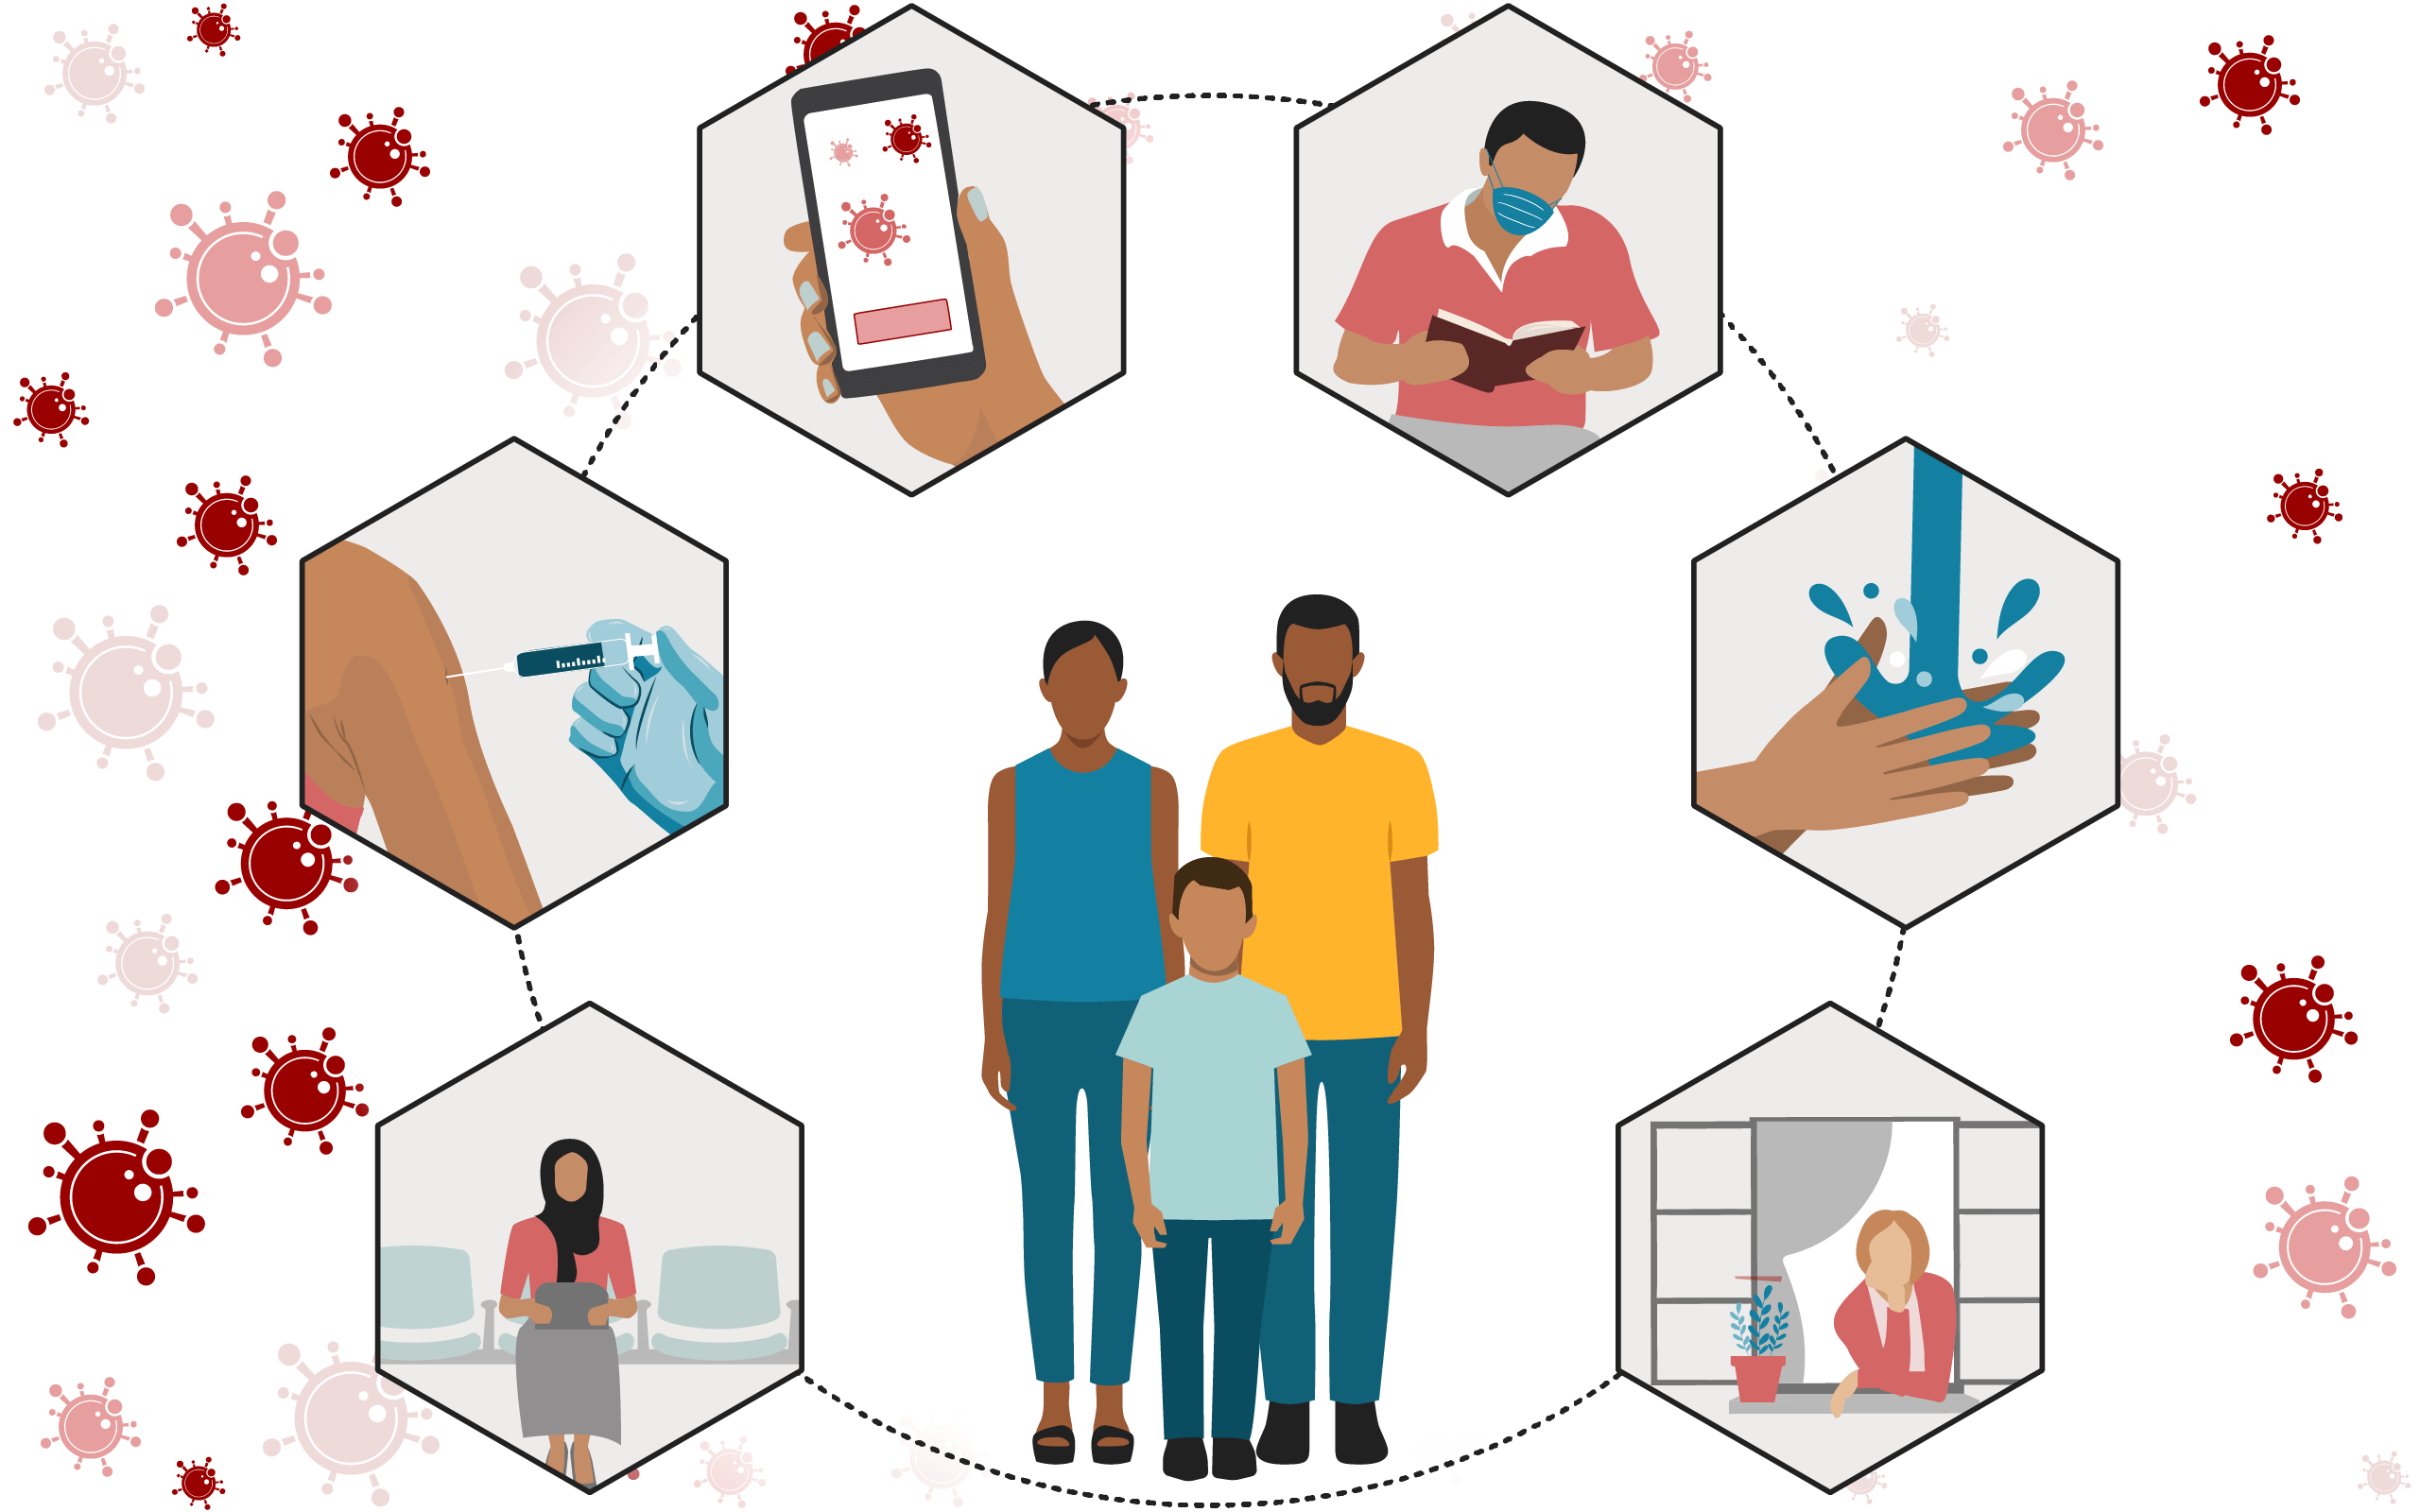 Illustration of a family and their options for reducing risk from coronavirus